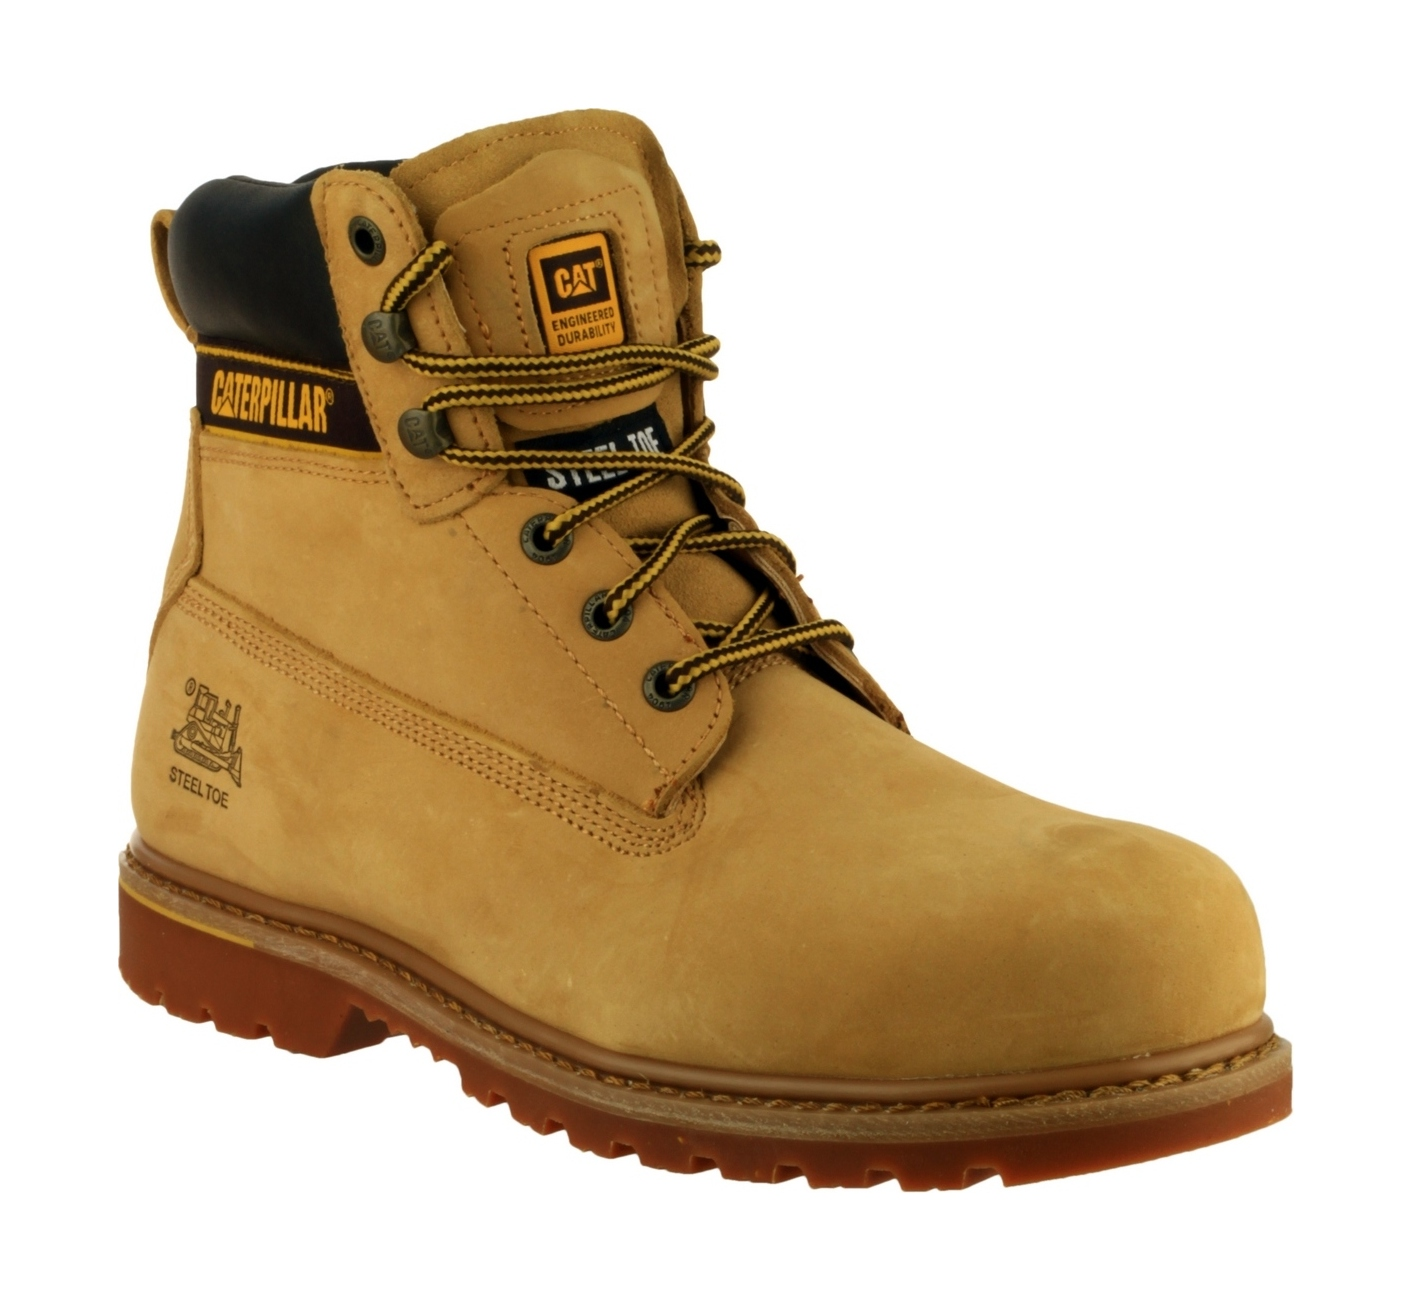 Caterpillar Safety Boots Holton S3 Honey Safety Boots R Us